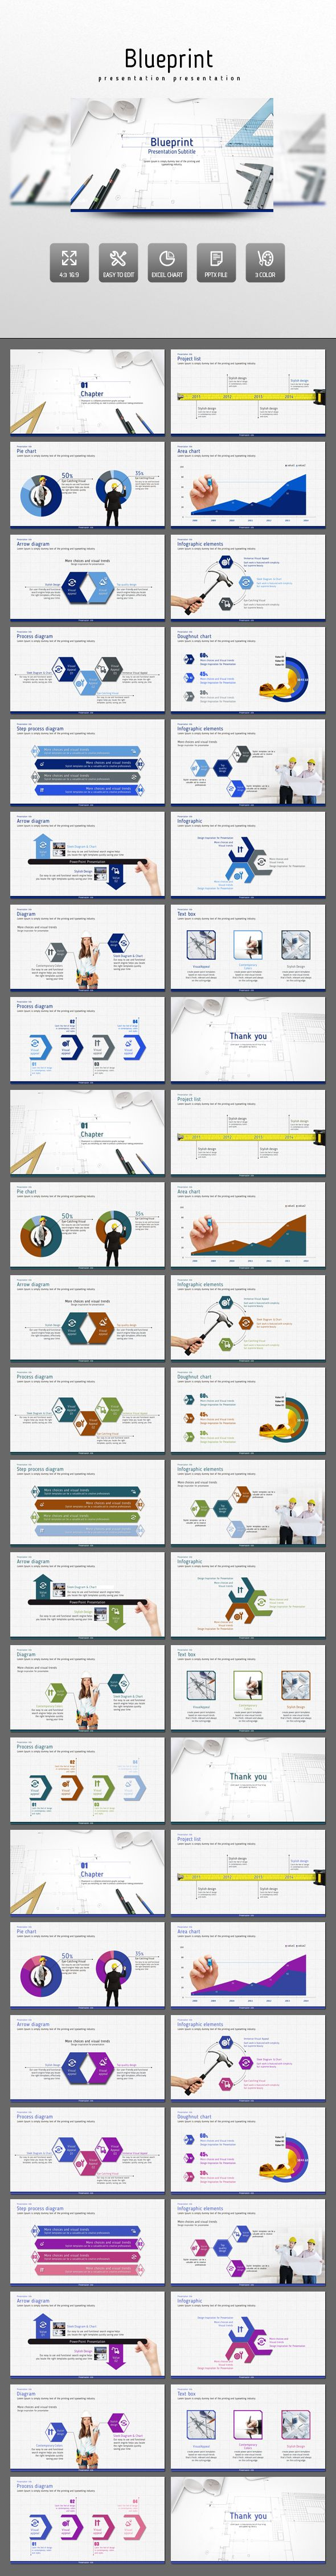 Blueprint PowerPoint Presentation Template #design #slides Download: http://graphicriver.net/item/blueprint/14137250?ref=ksioks